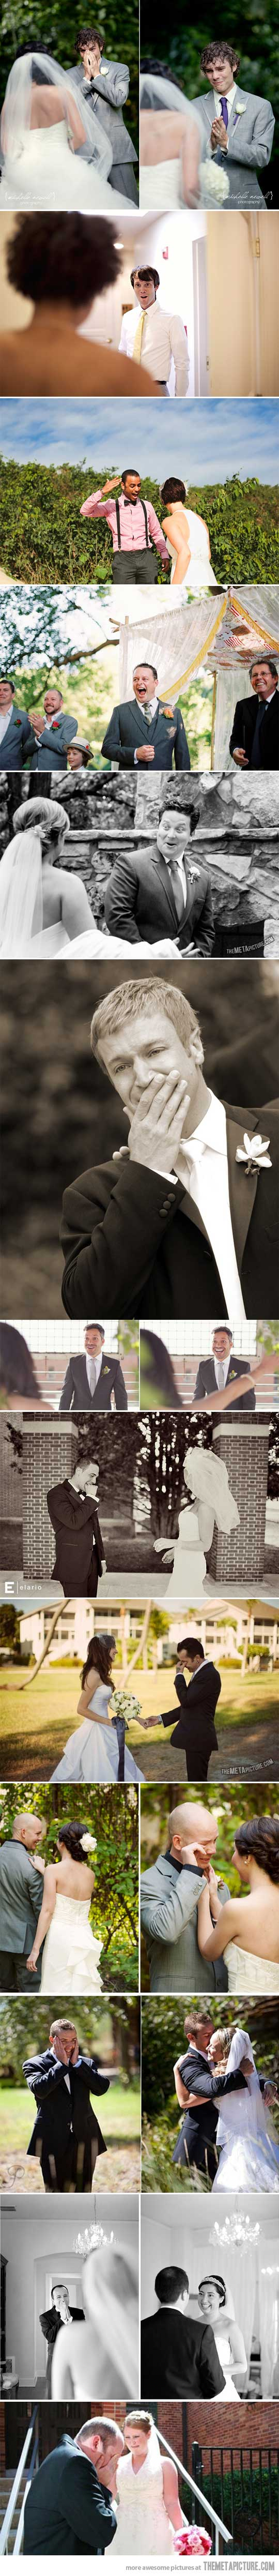 What Happens When Grooms See Their Brides For The First Time...